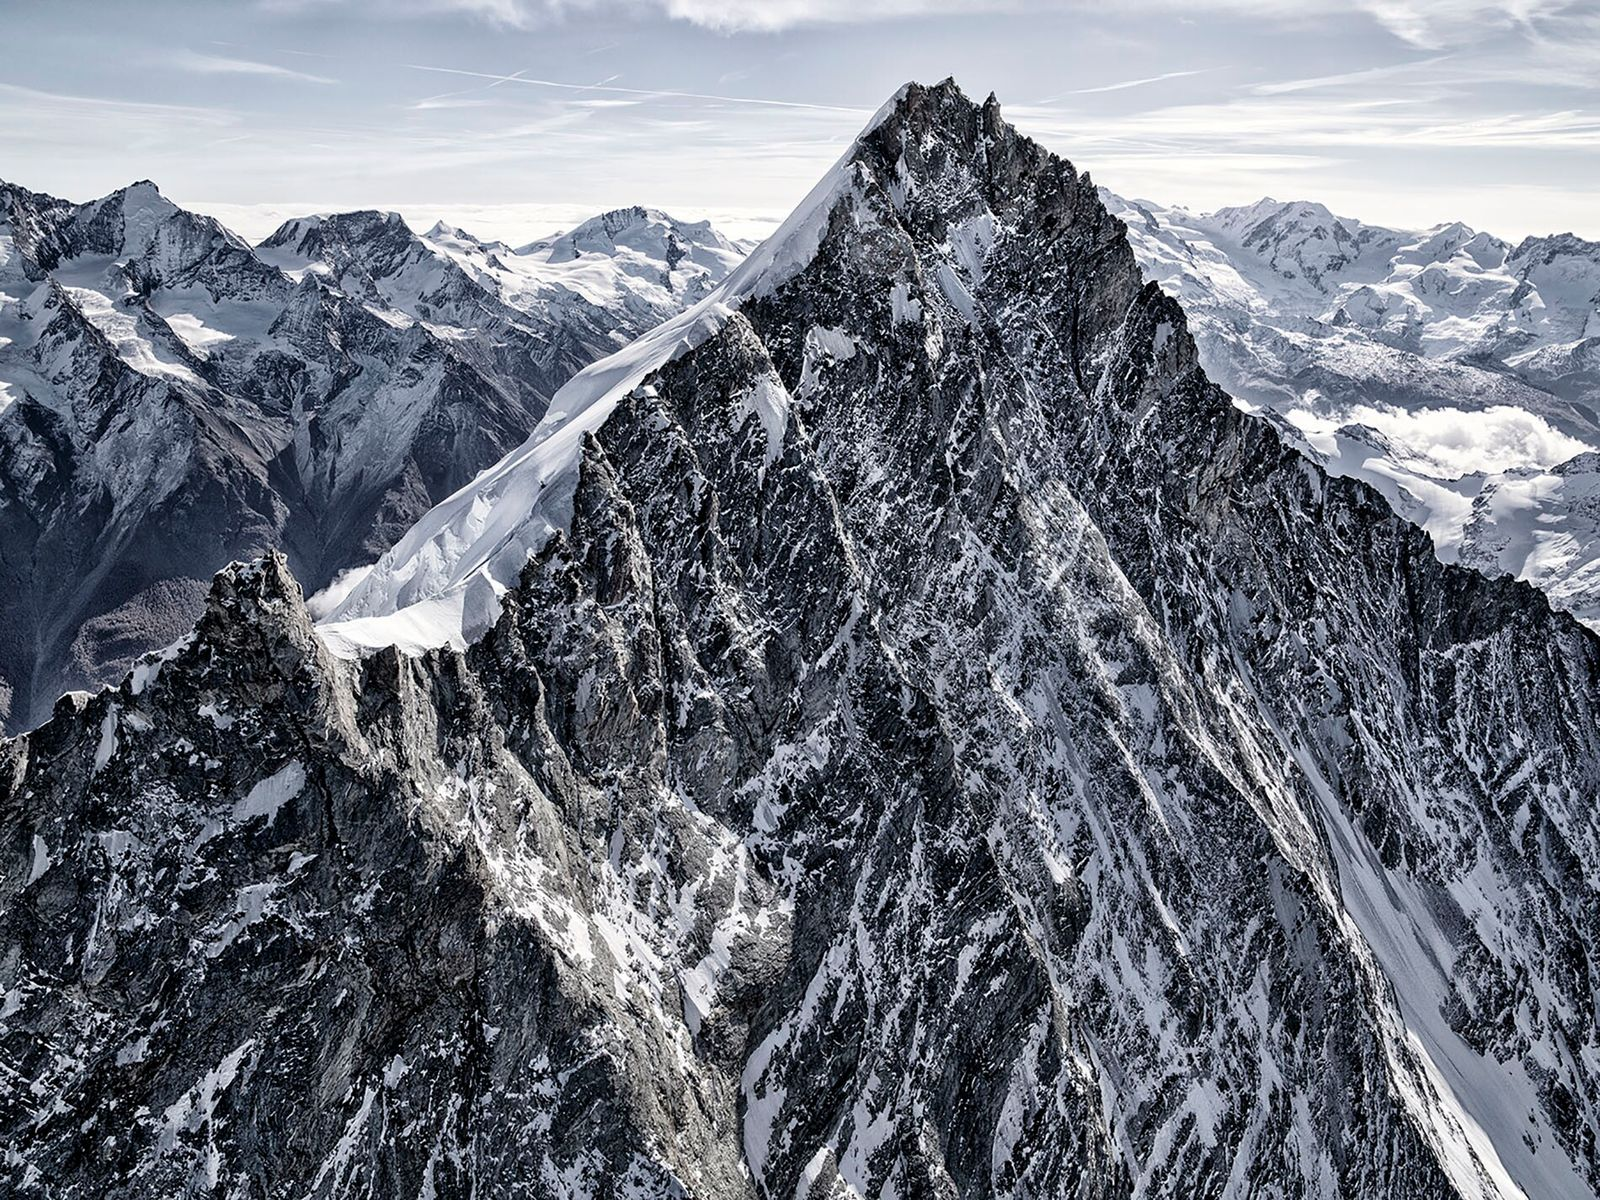 The Weisshorn in Zermatt is over 14,000ft high, looming over the Swiss landscape. Nico hung precariously ...